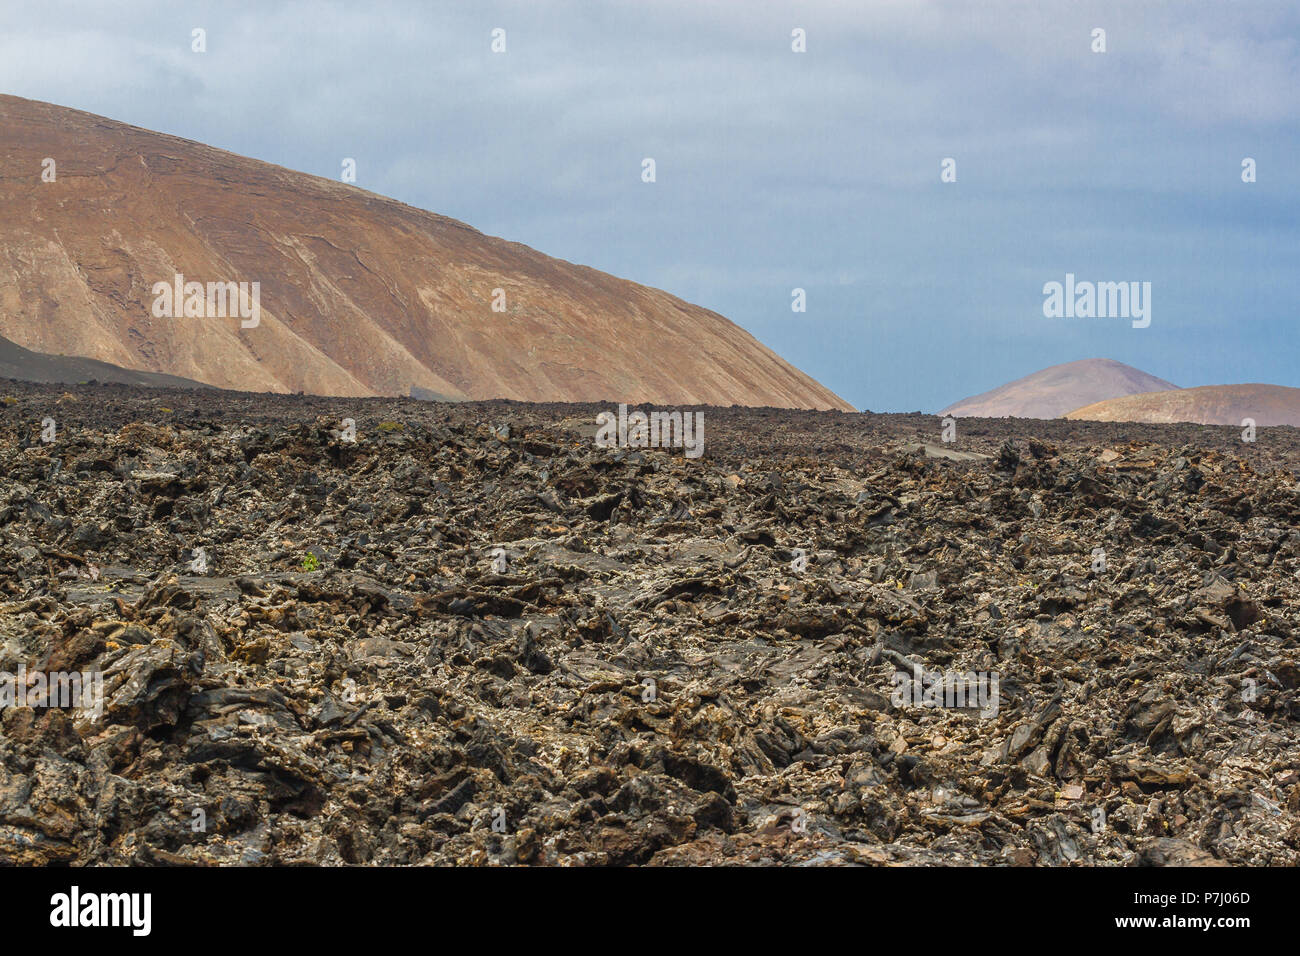 Volcanic rock from lava flow. Lava field in Timanfaya National Park in Lanzarote, Canary Islands, Spain. - Stock Image